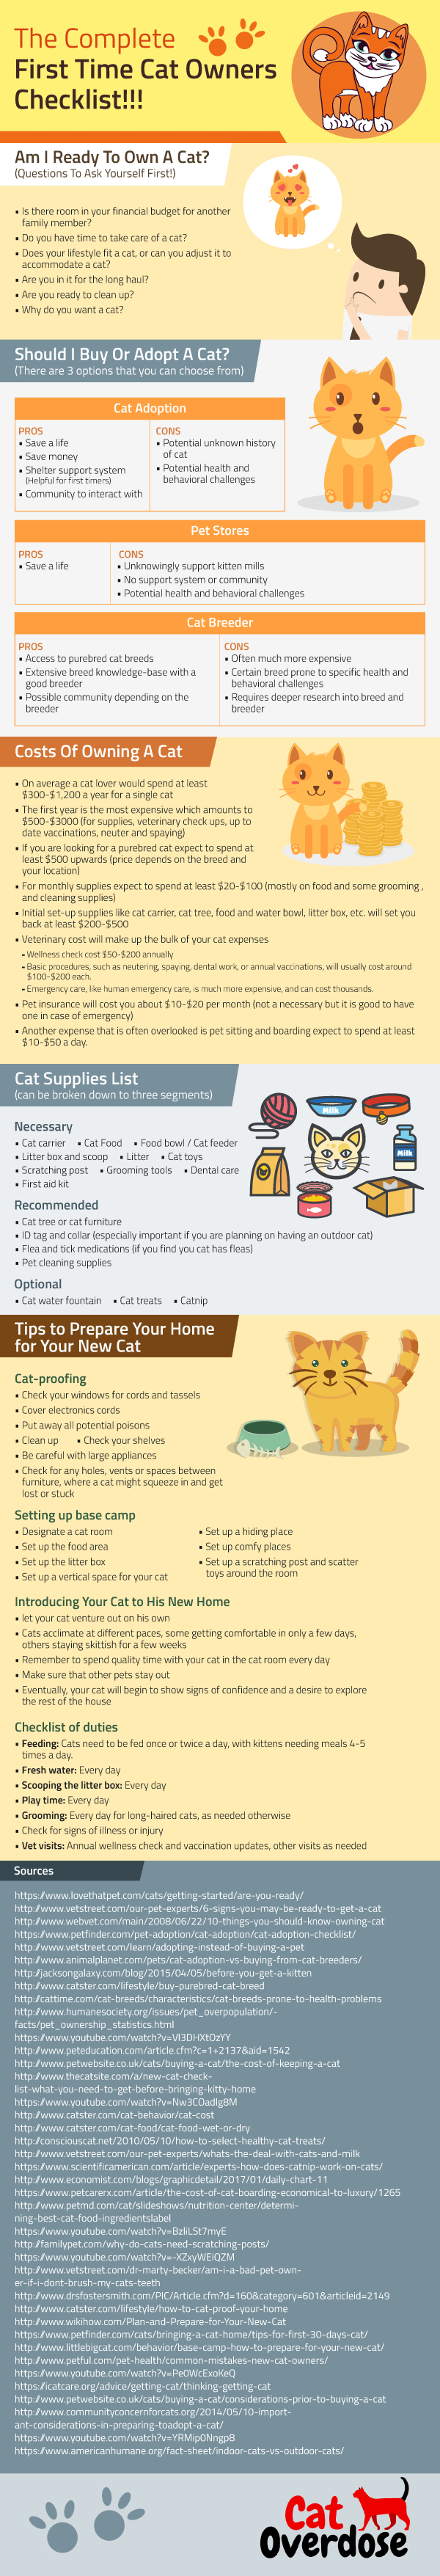 first time cat owner checklist infographic